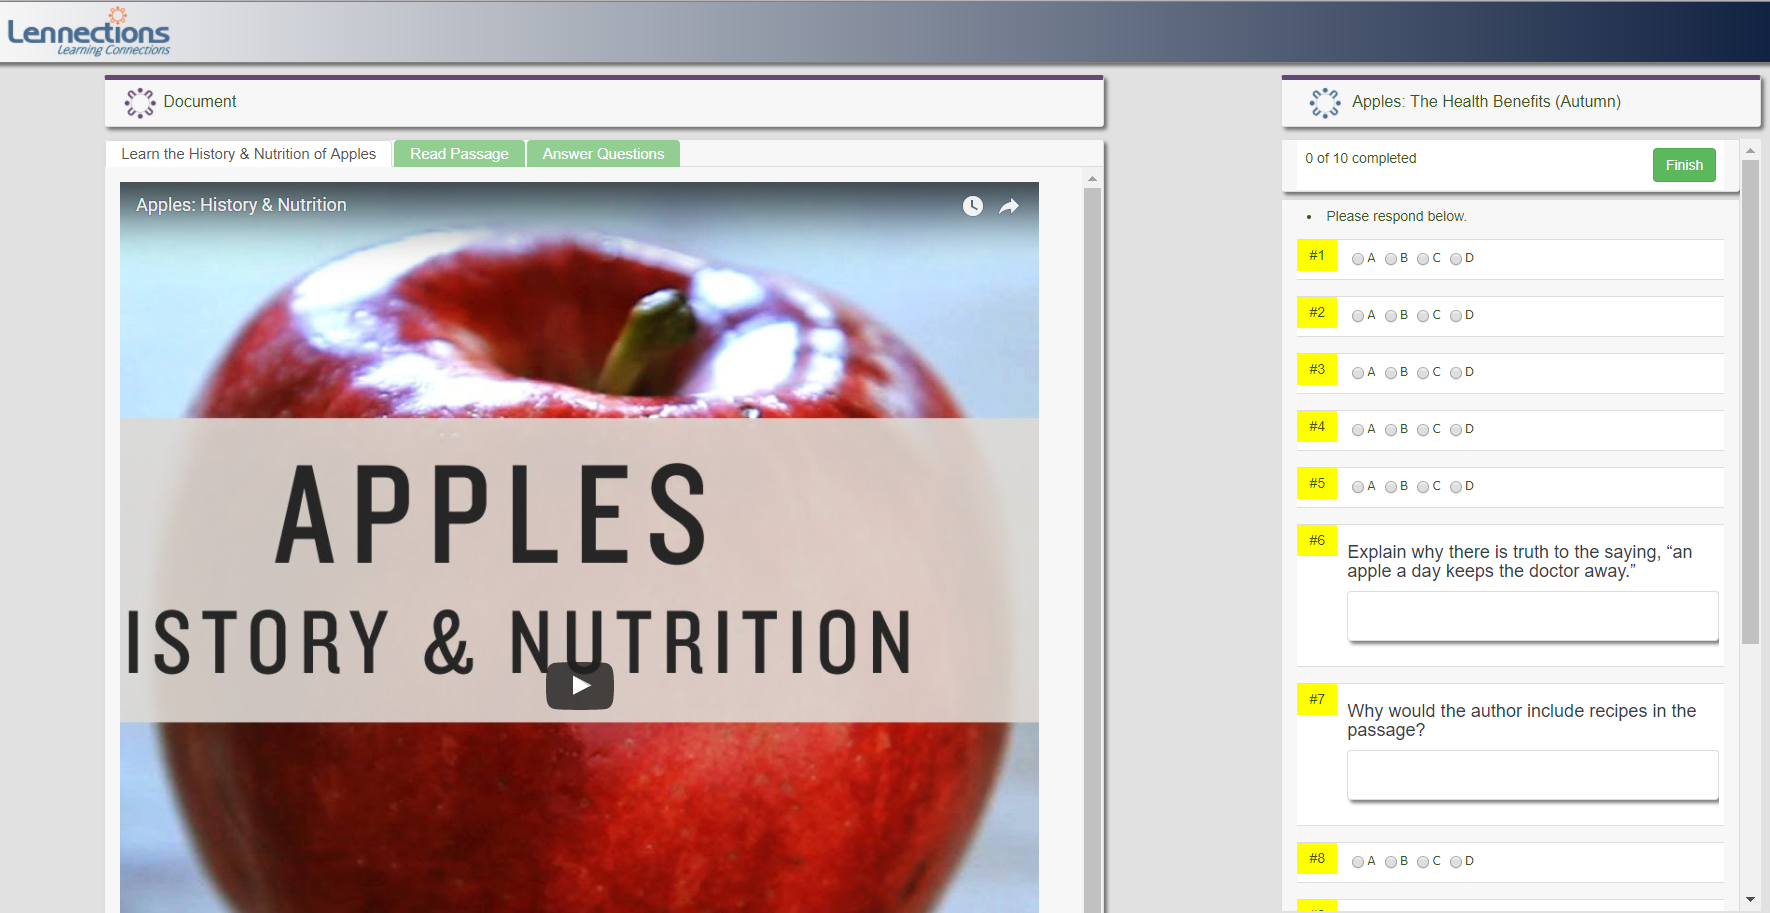 Multiple tabs allow activities to contain educational videos, reading passages, questions, and additional support documents.